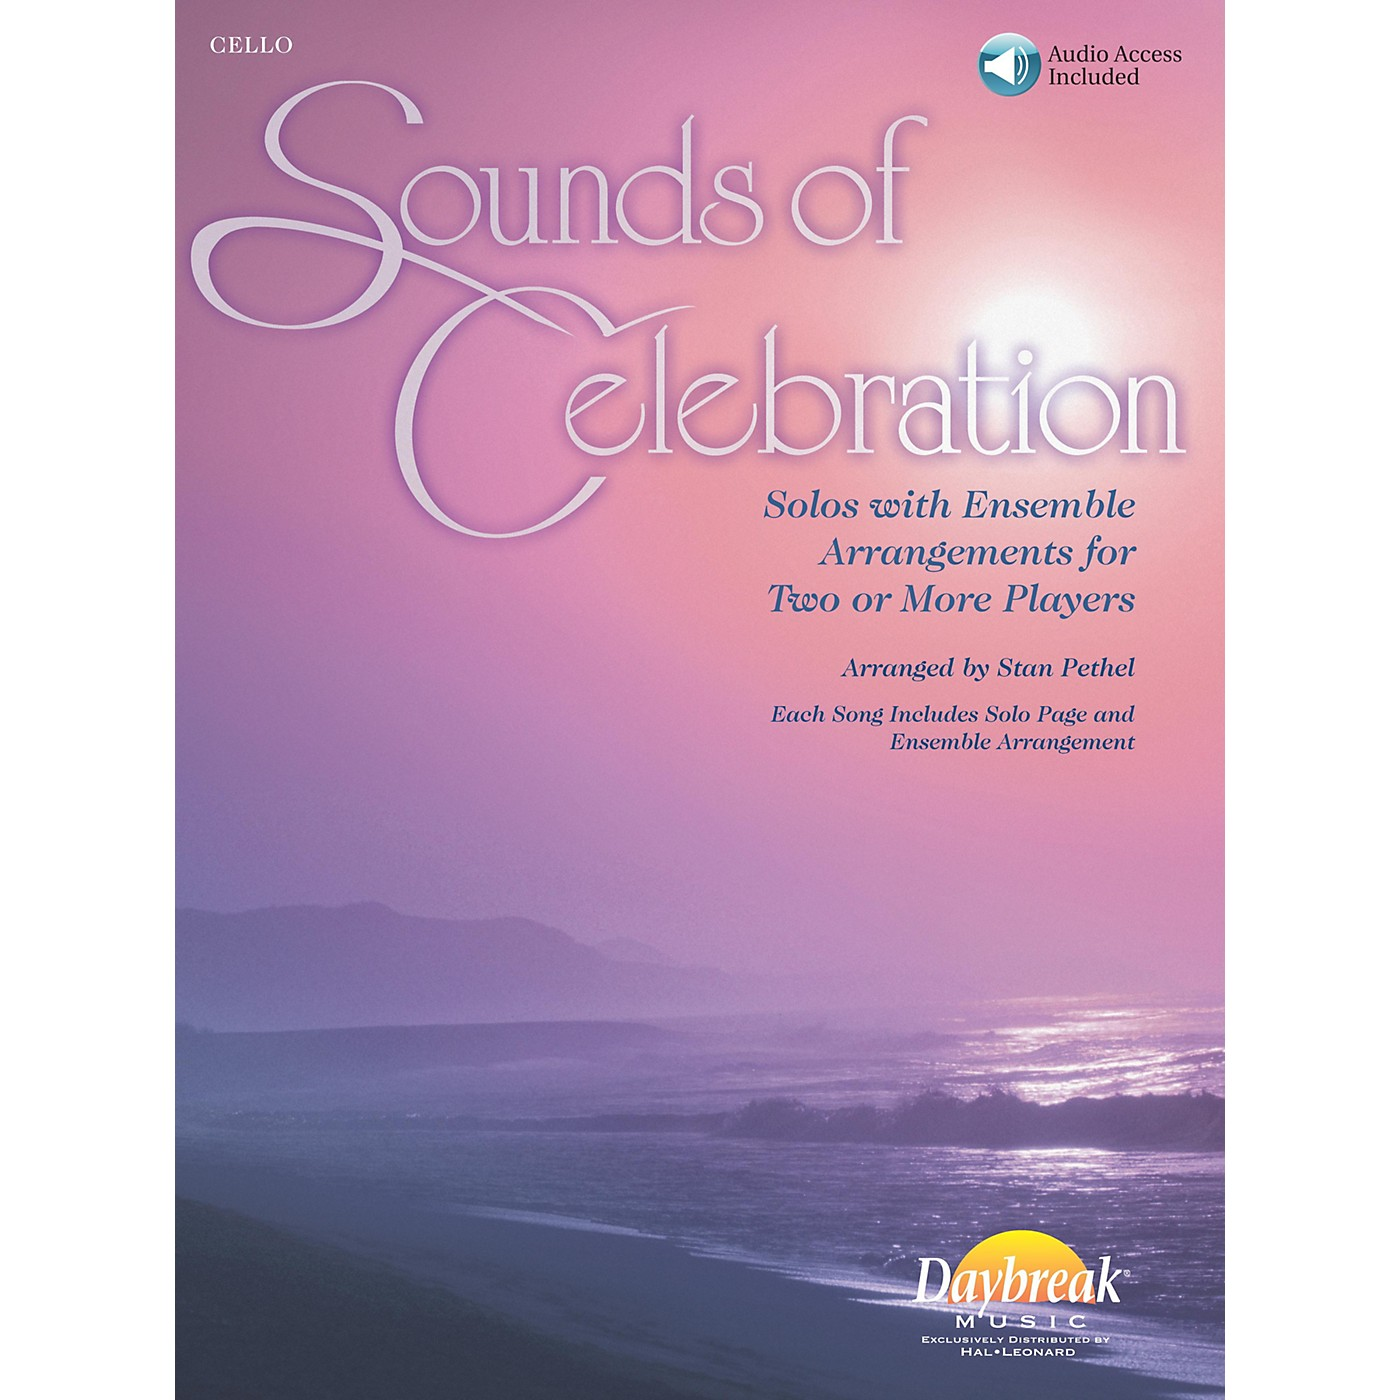 Daybreak Music Sounds of Celebration (Solos with Ensemble Arrangements for Two or More Players) Cello thumbnail